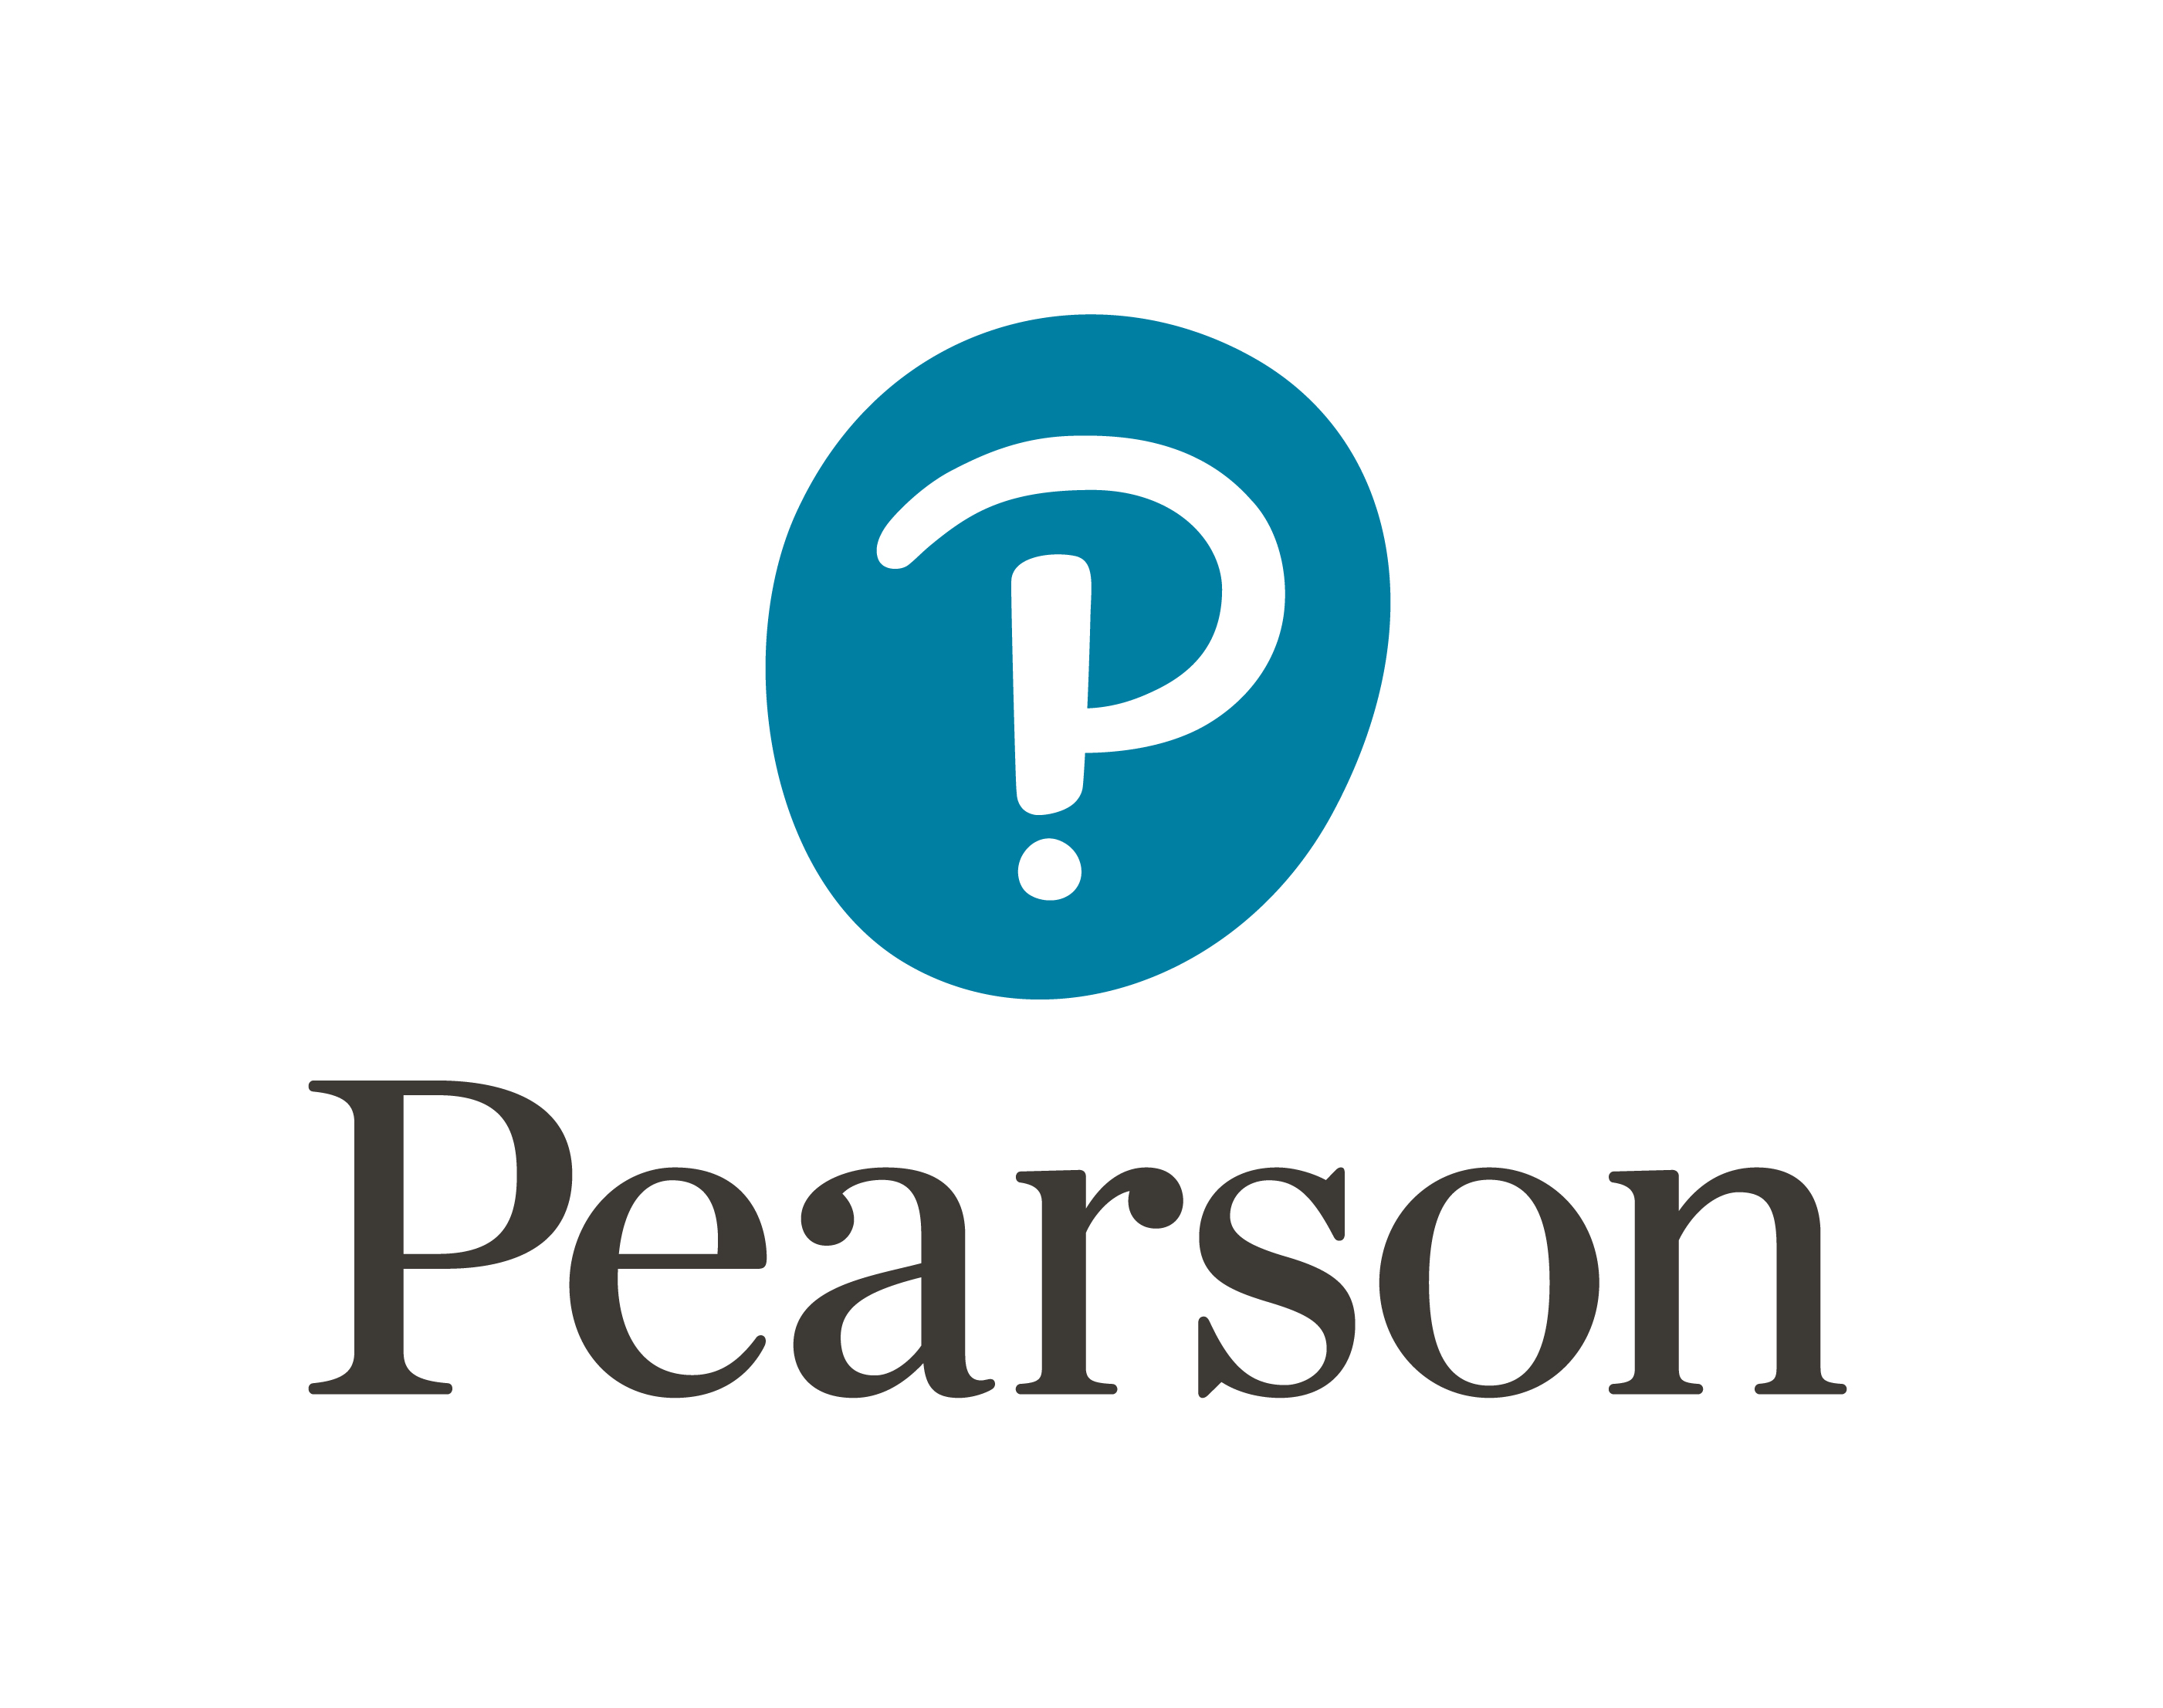 Pearson Team Leader_Supervisor EPA SAM Mark Scheme